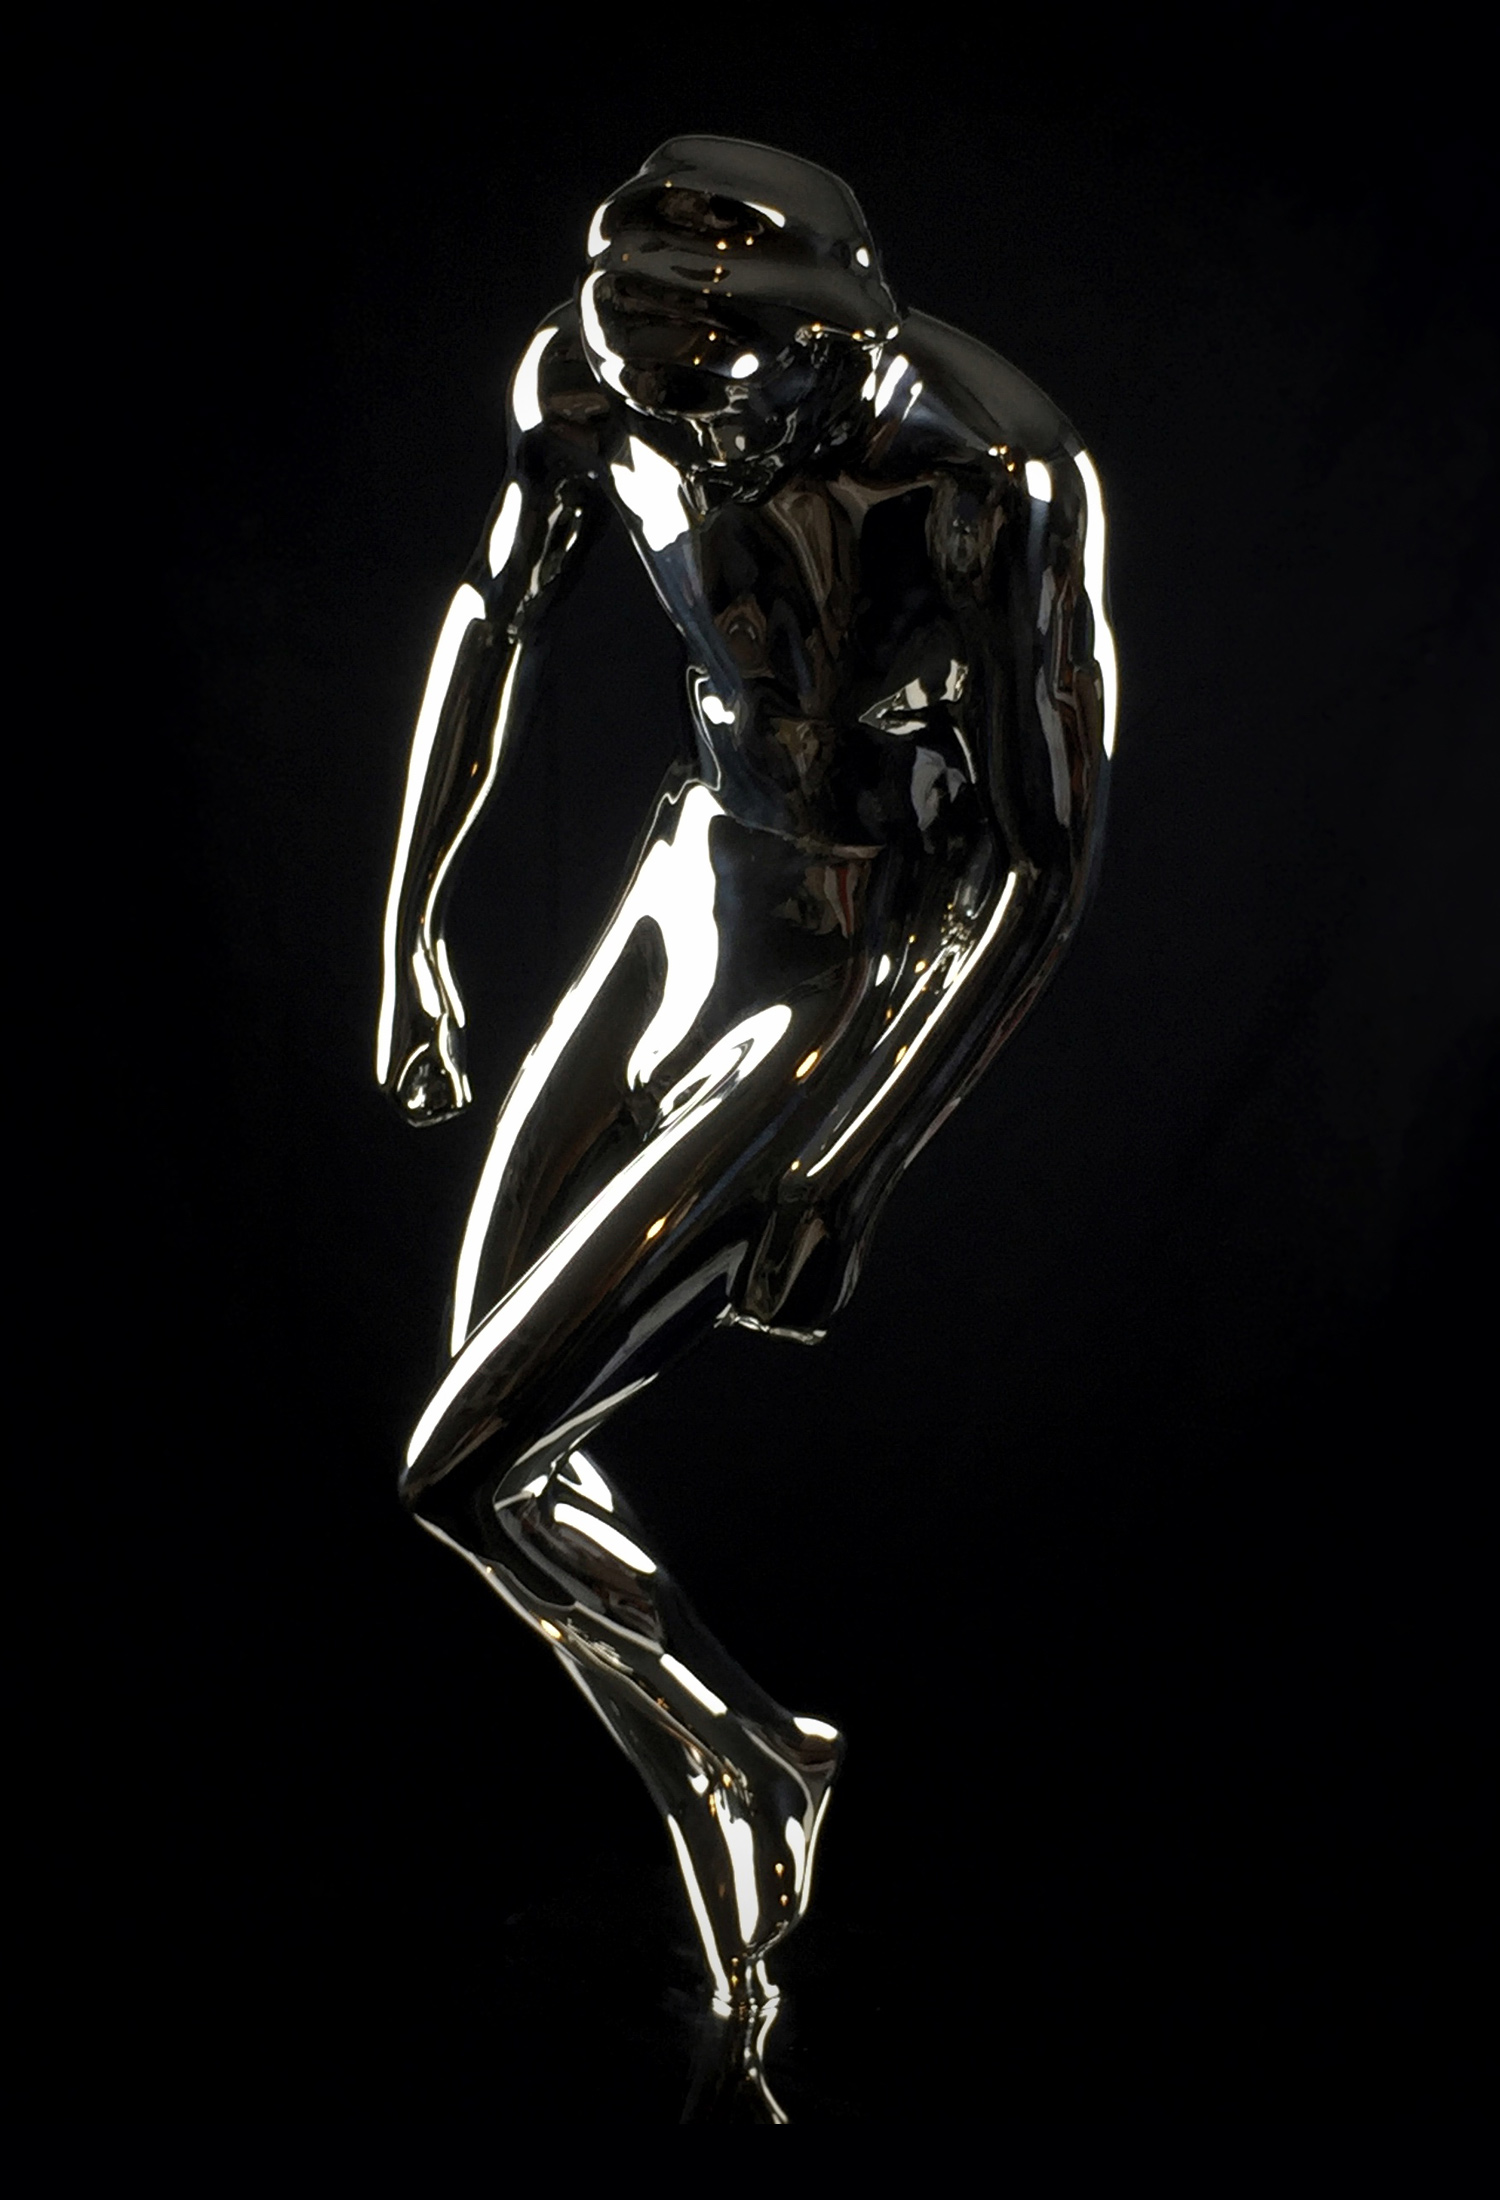 starsuit is a stainless steel sculpture by Emil Alzamora